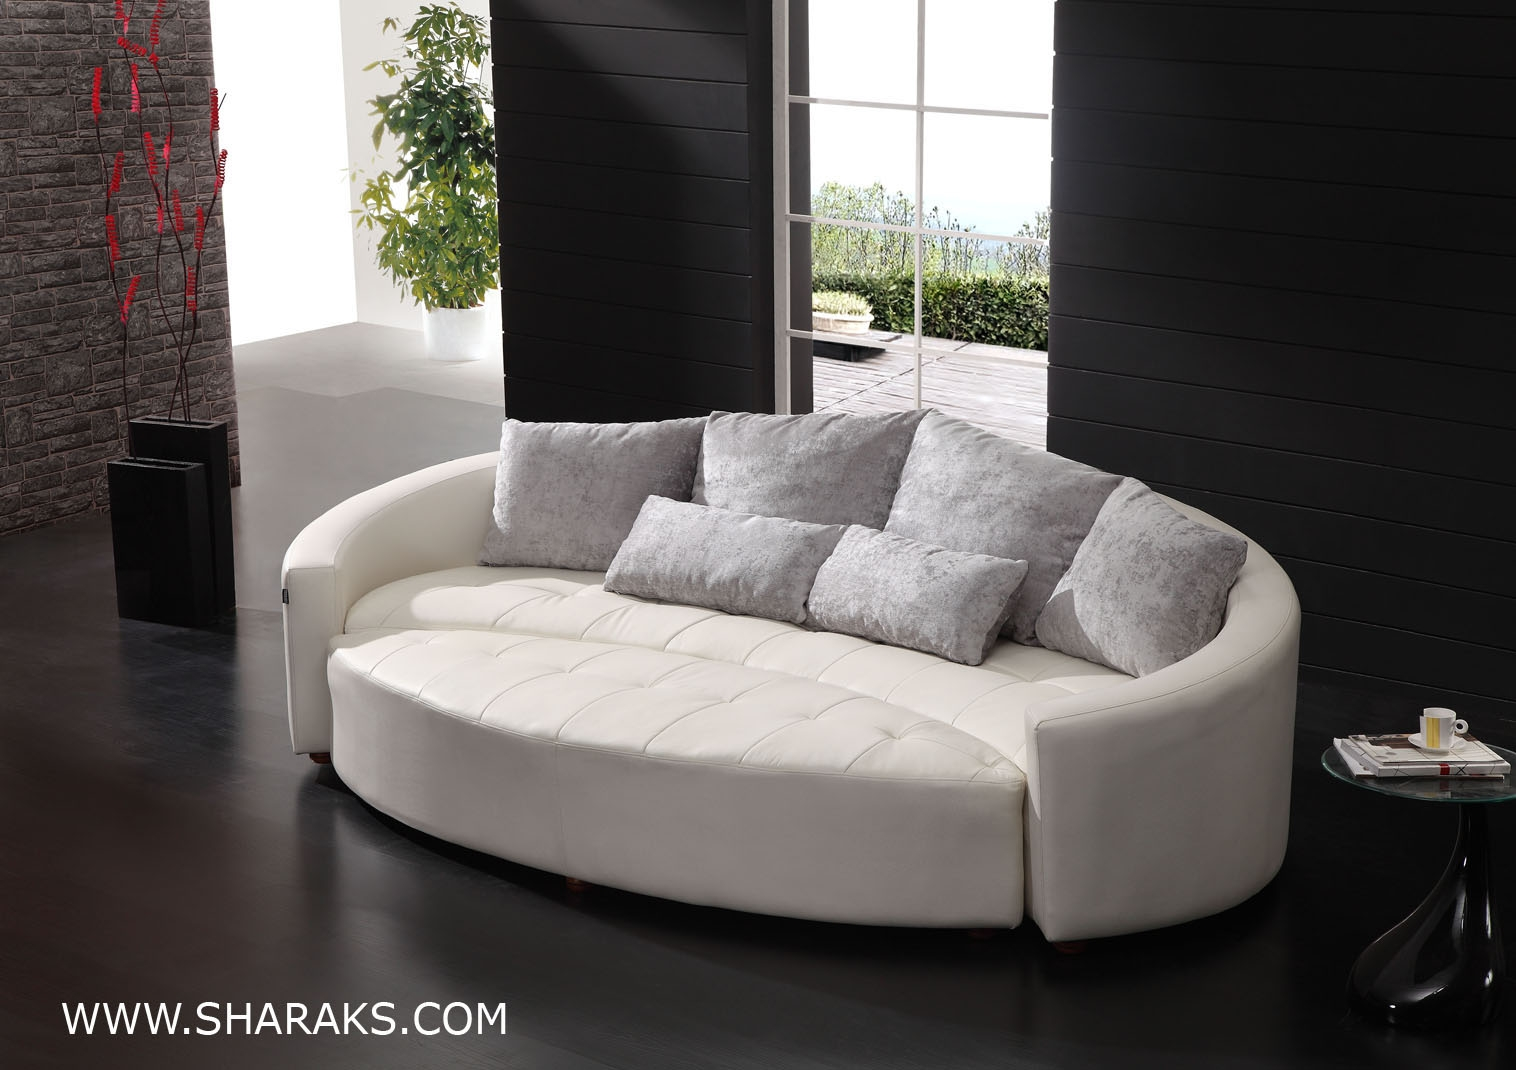 1000 Ideas About Enclosed Bed On Pinterest: 12 Ideas Of Contemporary Curved Sofas